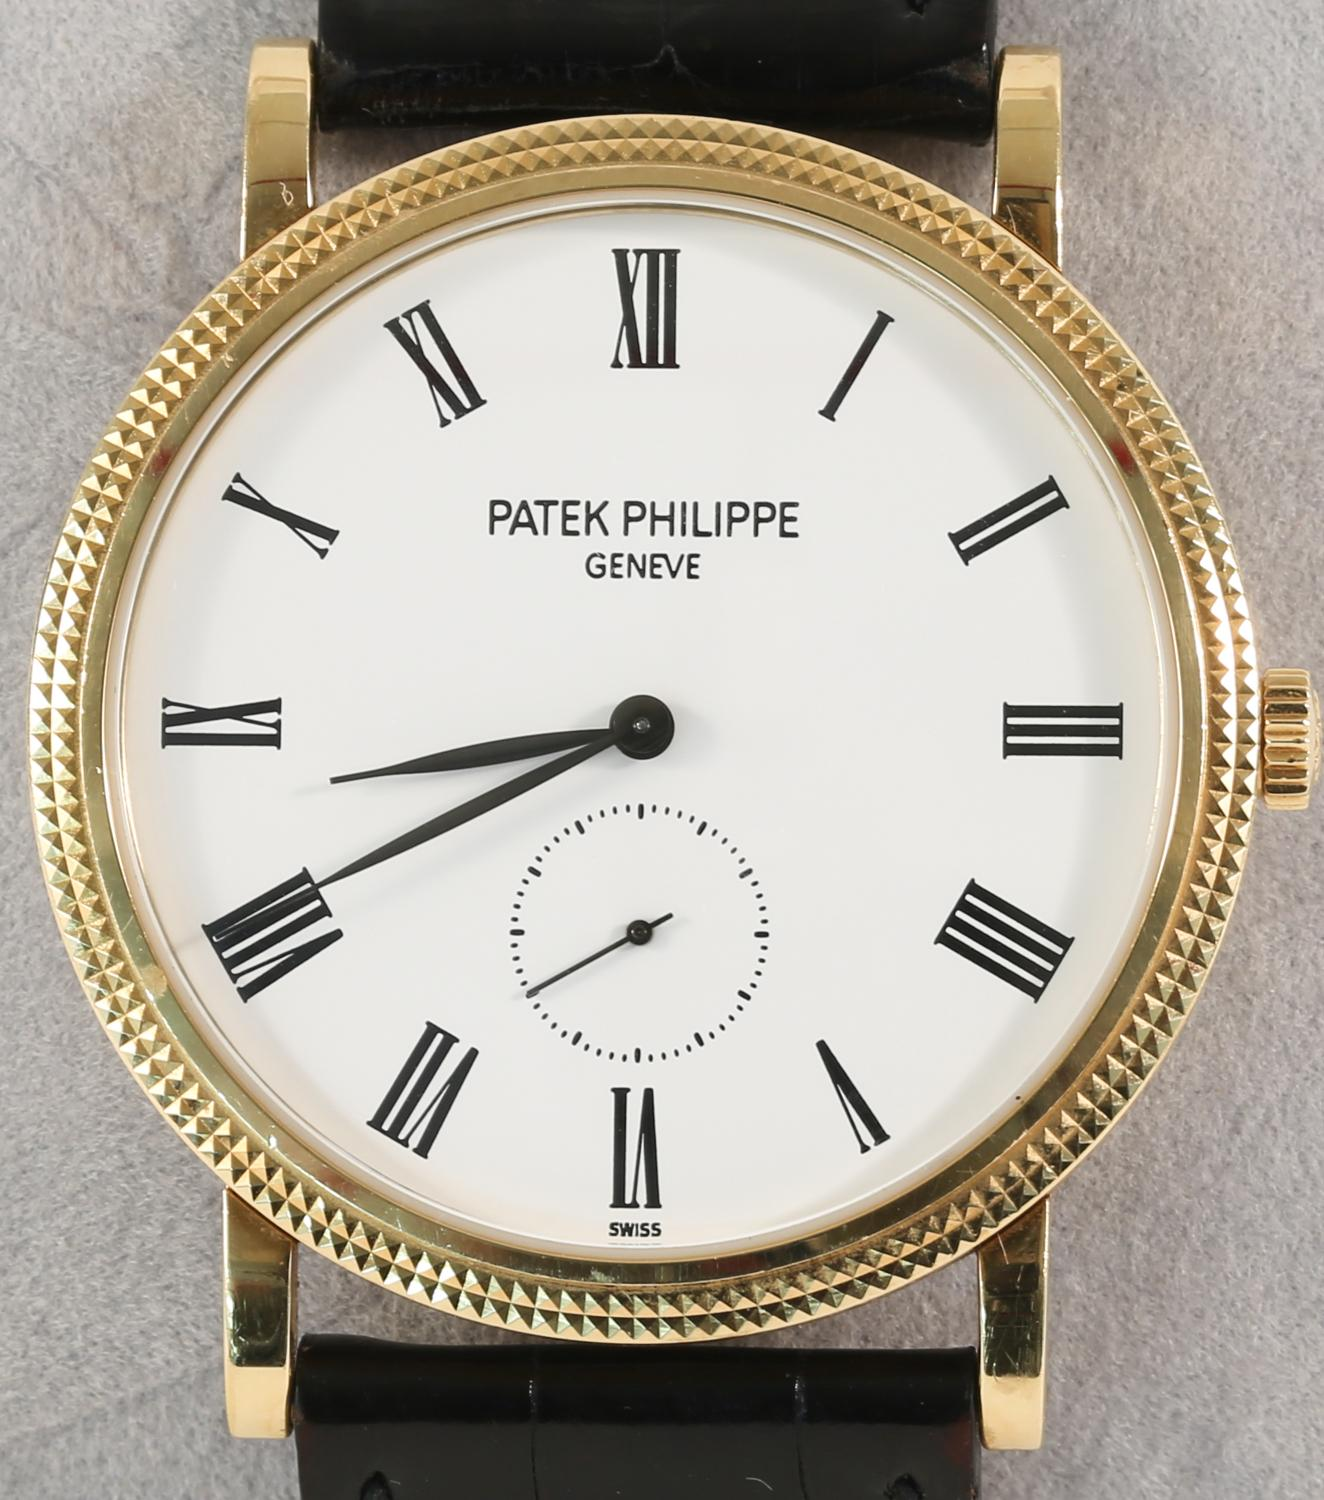 Anthony Bourdain Watch Collection - Patek Philippe Calatrava